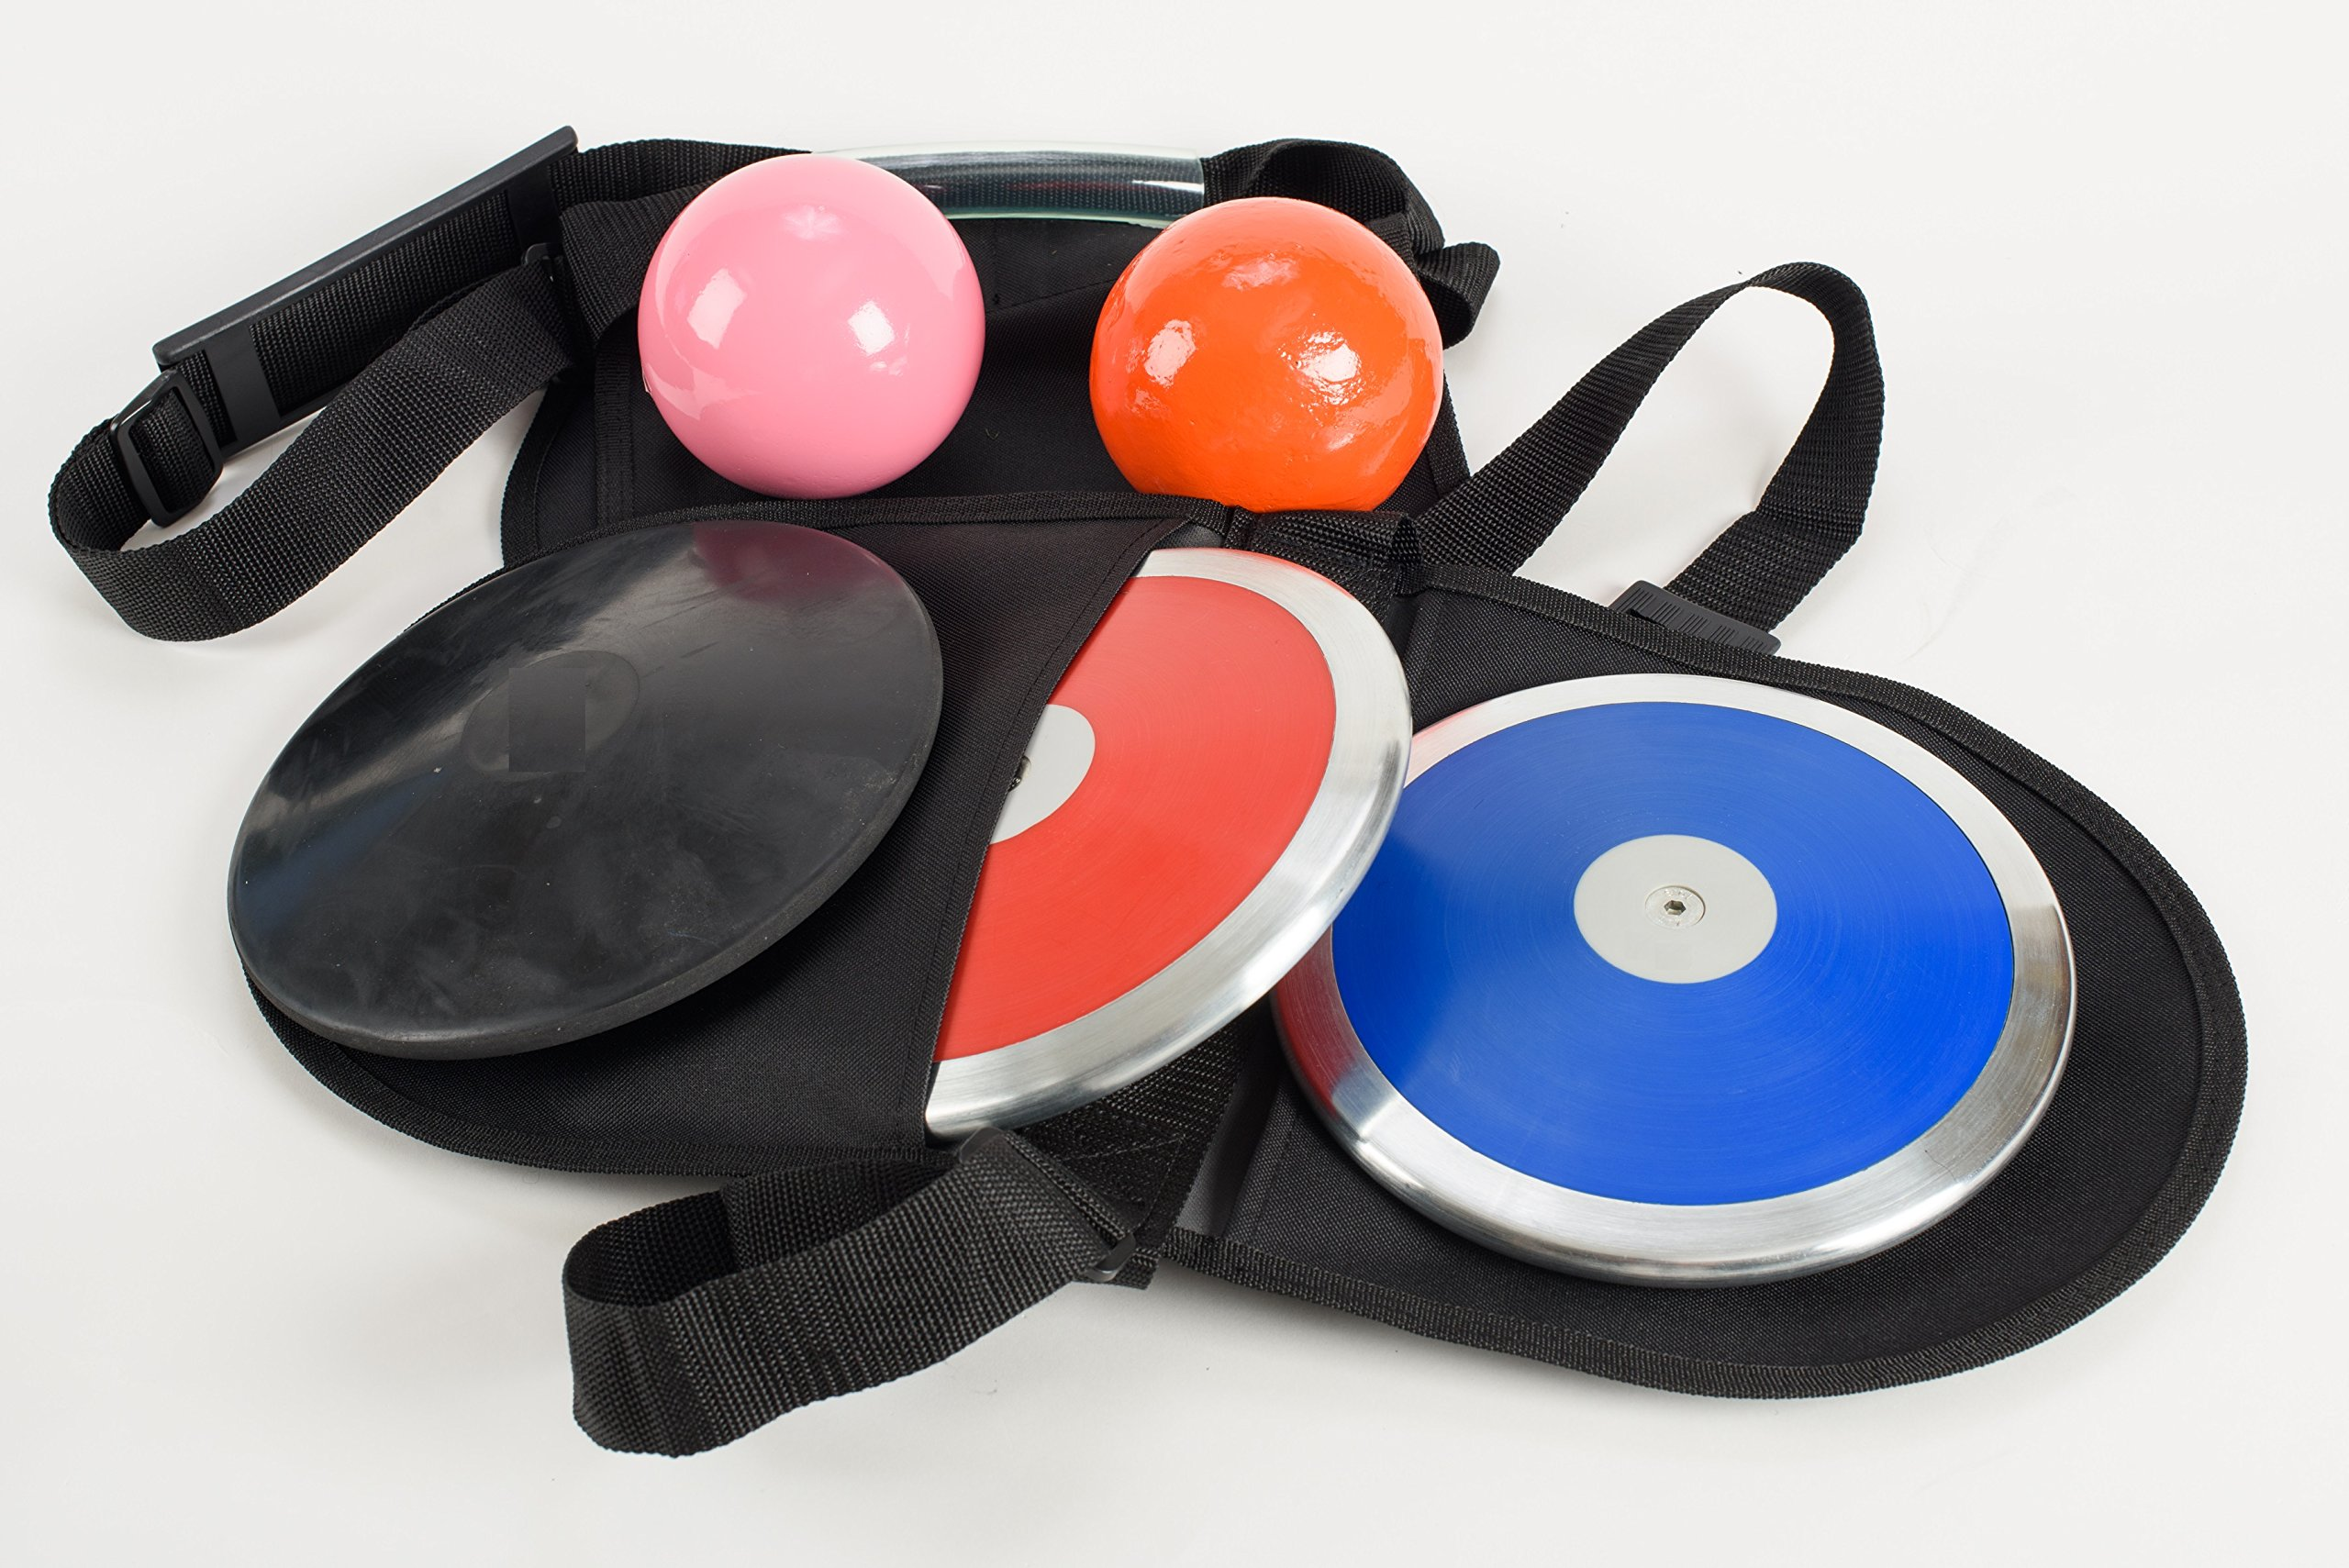 New - All In One Competition Track & Field Women's and Girls Discus and Shot Put Throws Pack